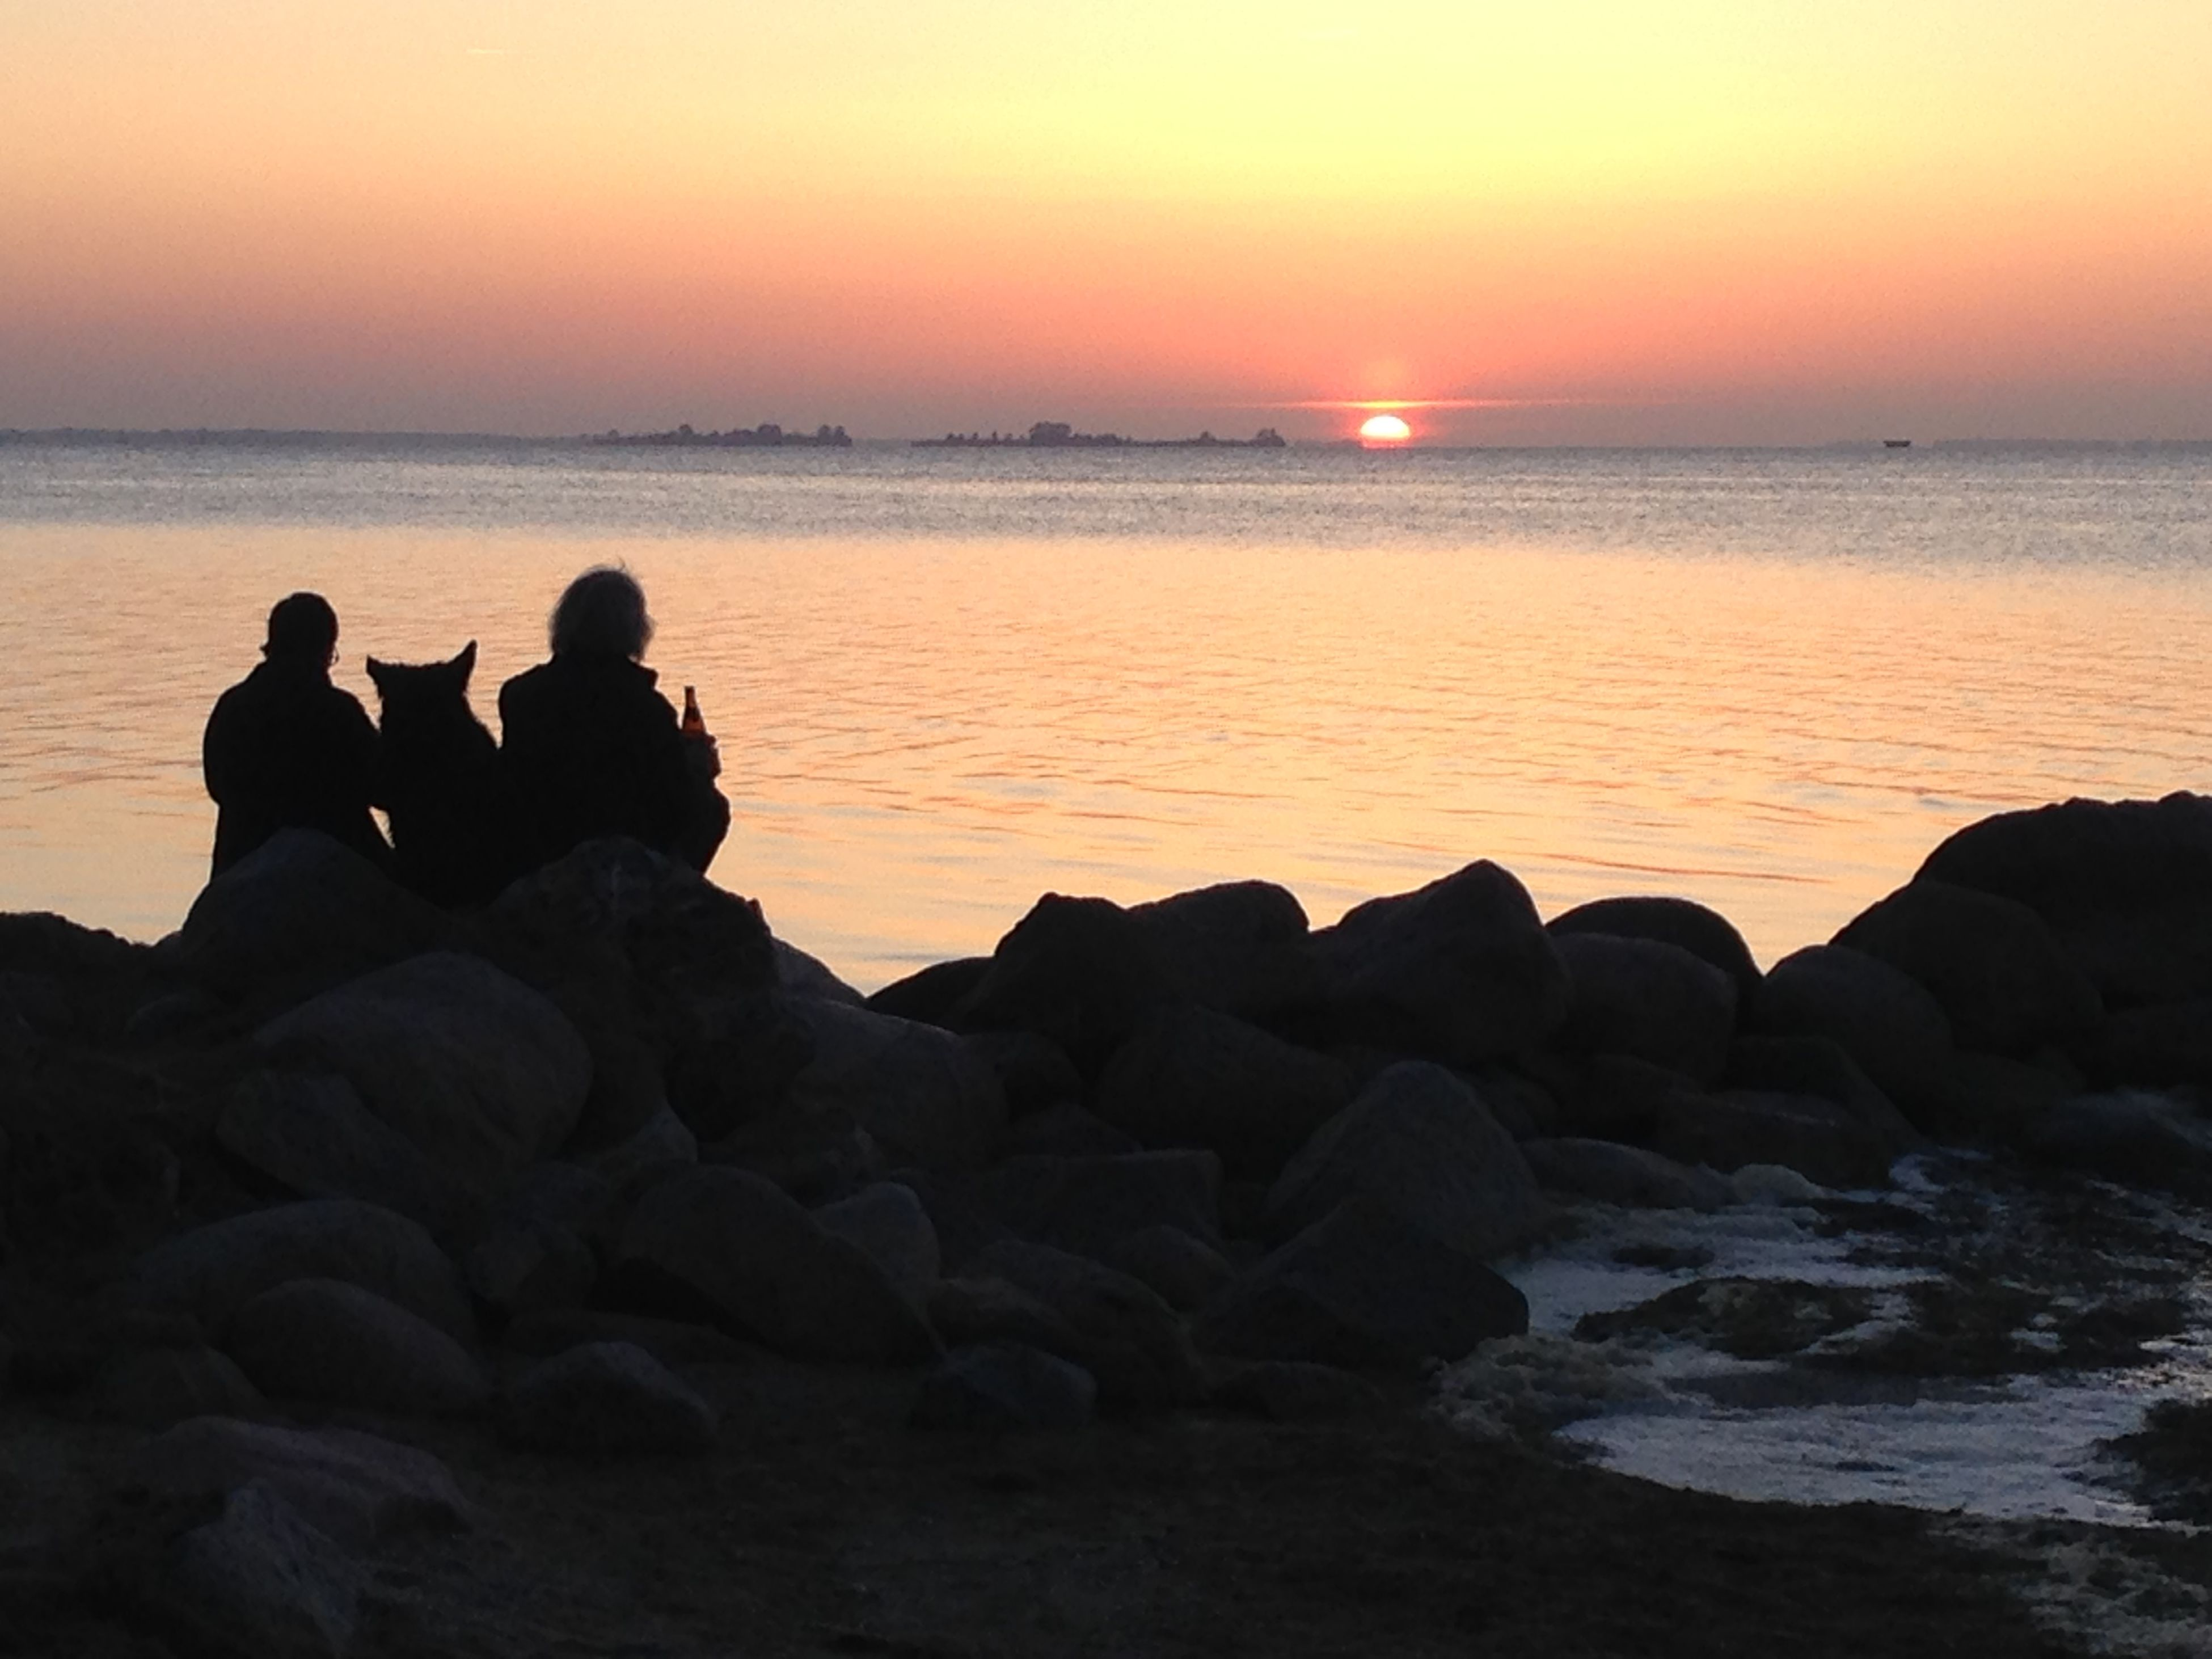 sea, water, sunset, horizon over water, silhouette, scenics, beauty in nature, rock - object, tranquil scene, tranquility, idyllic, beach, sun, nature, orange color, men, leisure activity, sky, rock formation